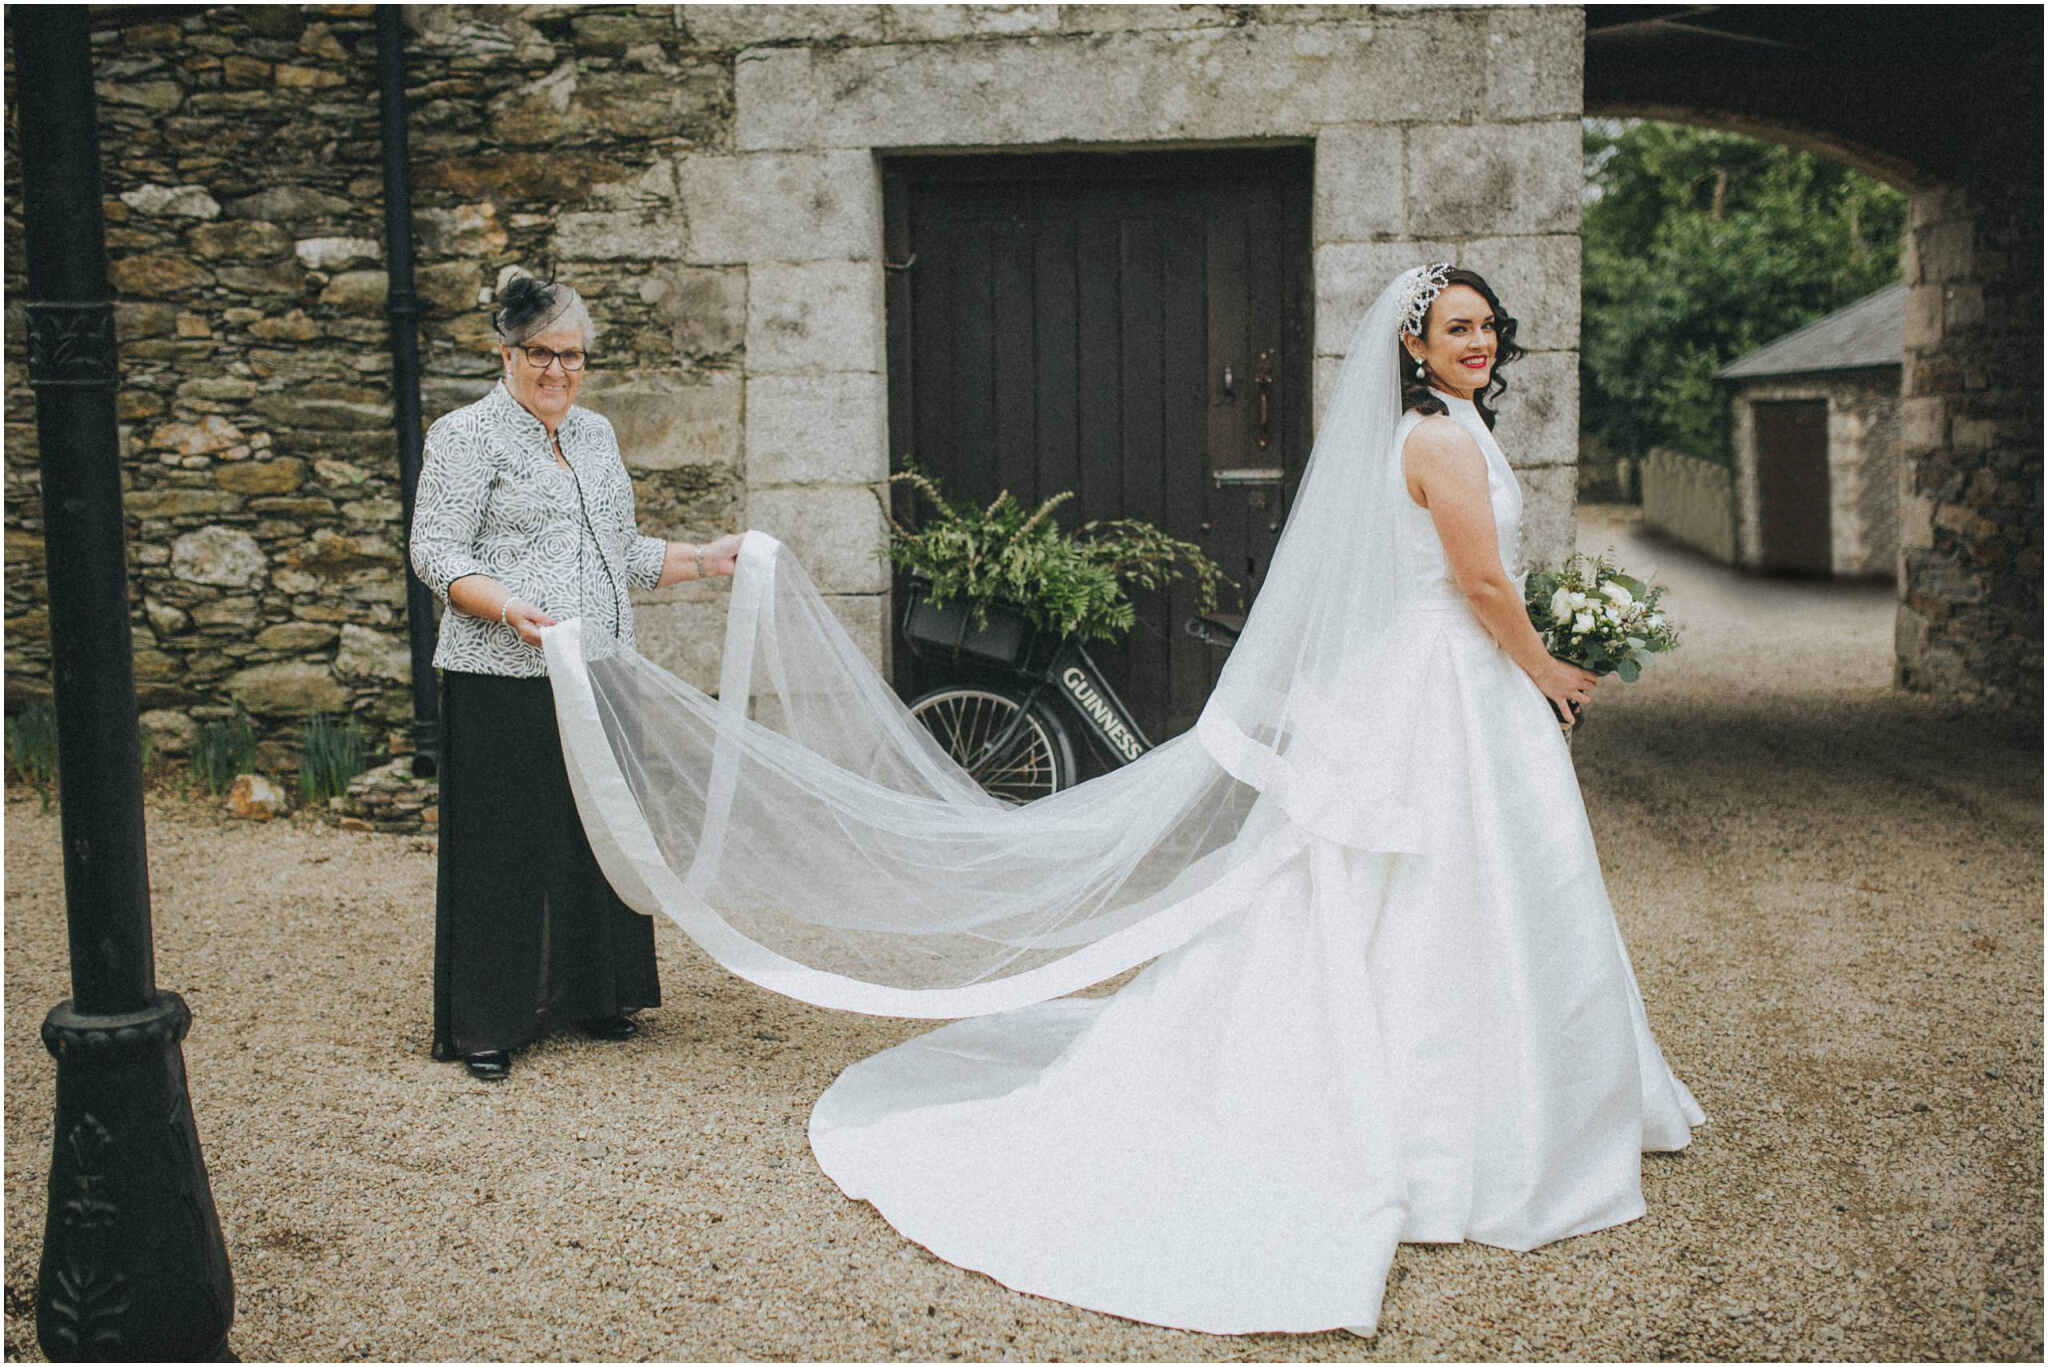 Ballybeg house wicklow fun relaxed wedding00067 1 - Fun and Relaxed wedding and elopement photography in Ireland, perfect for adventurous and outdoorsy couples